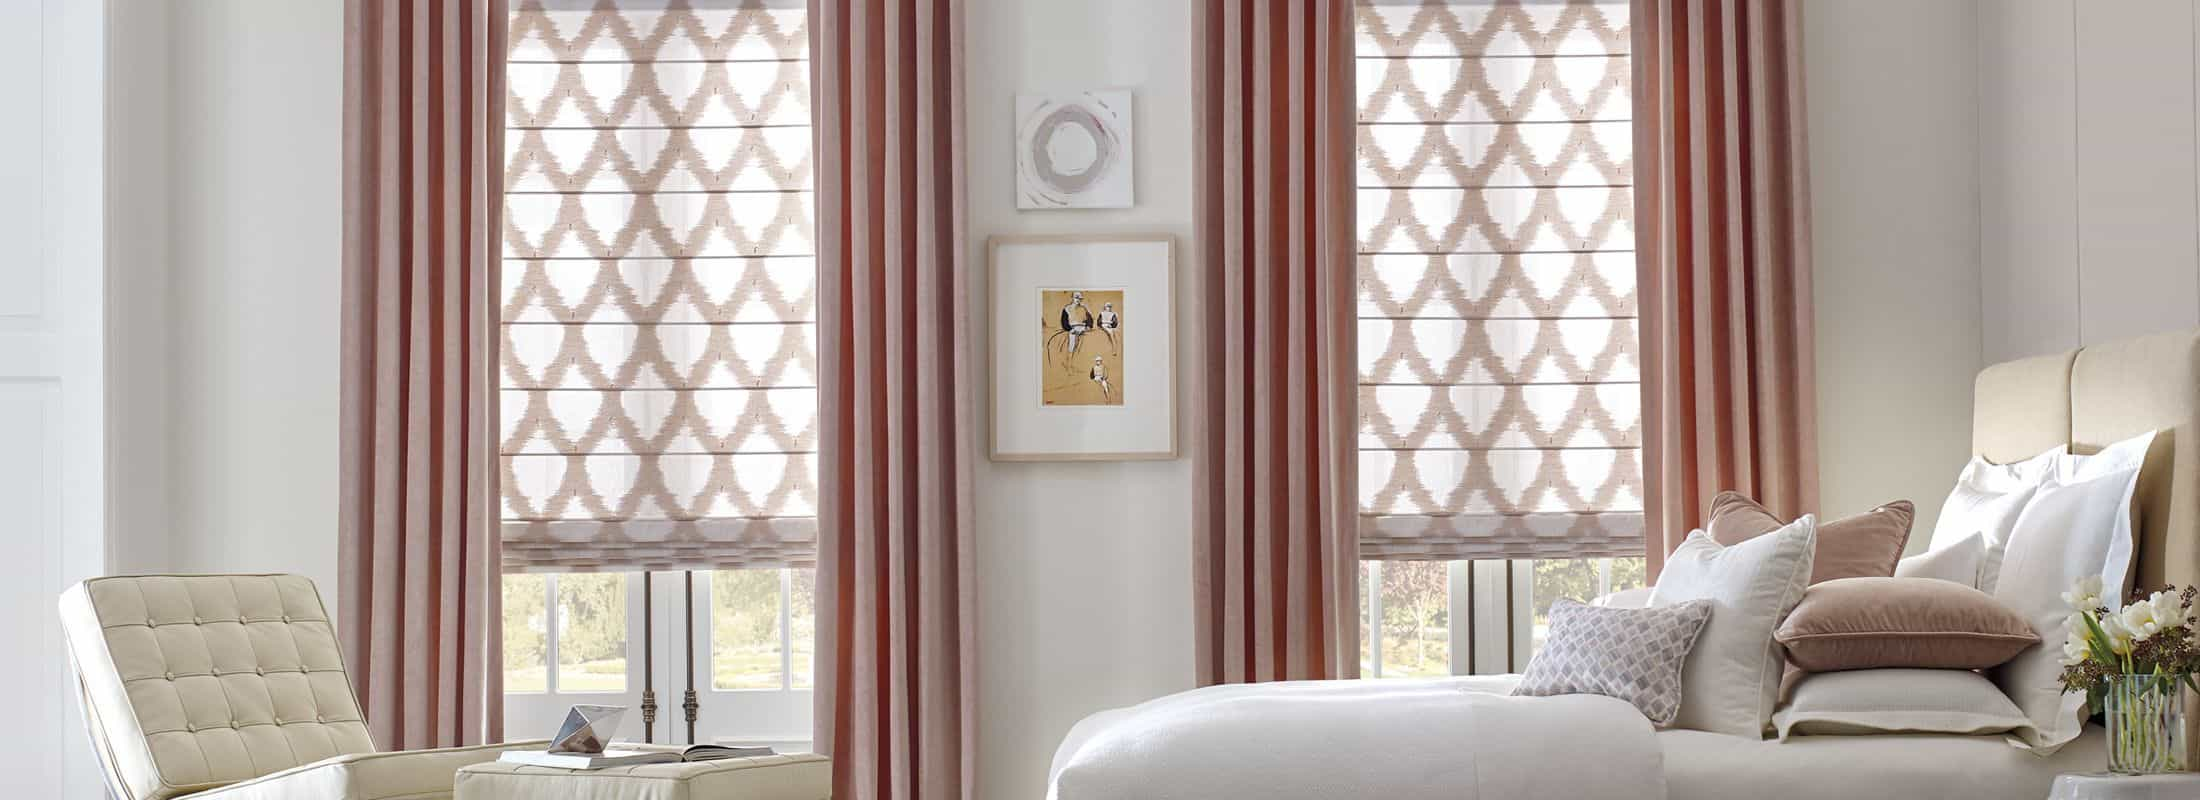 Top 10 Modern Curtains 2021 Best Colors Prints And Fabrics